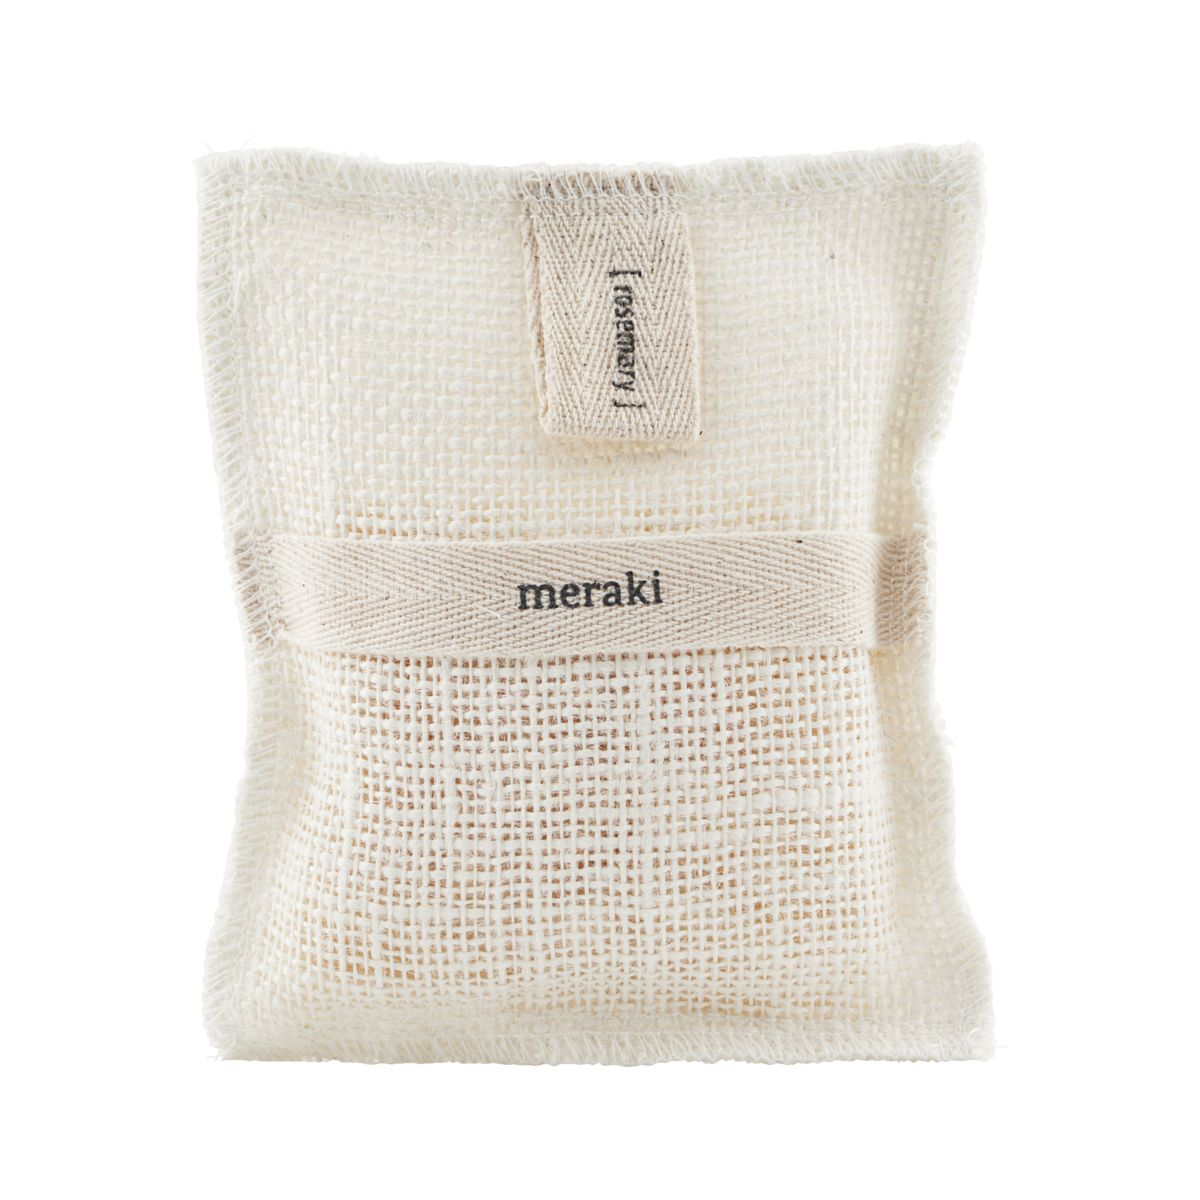 Meraki - Bath mitt - Rosemary